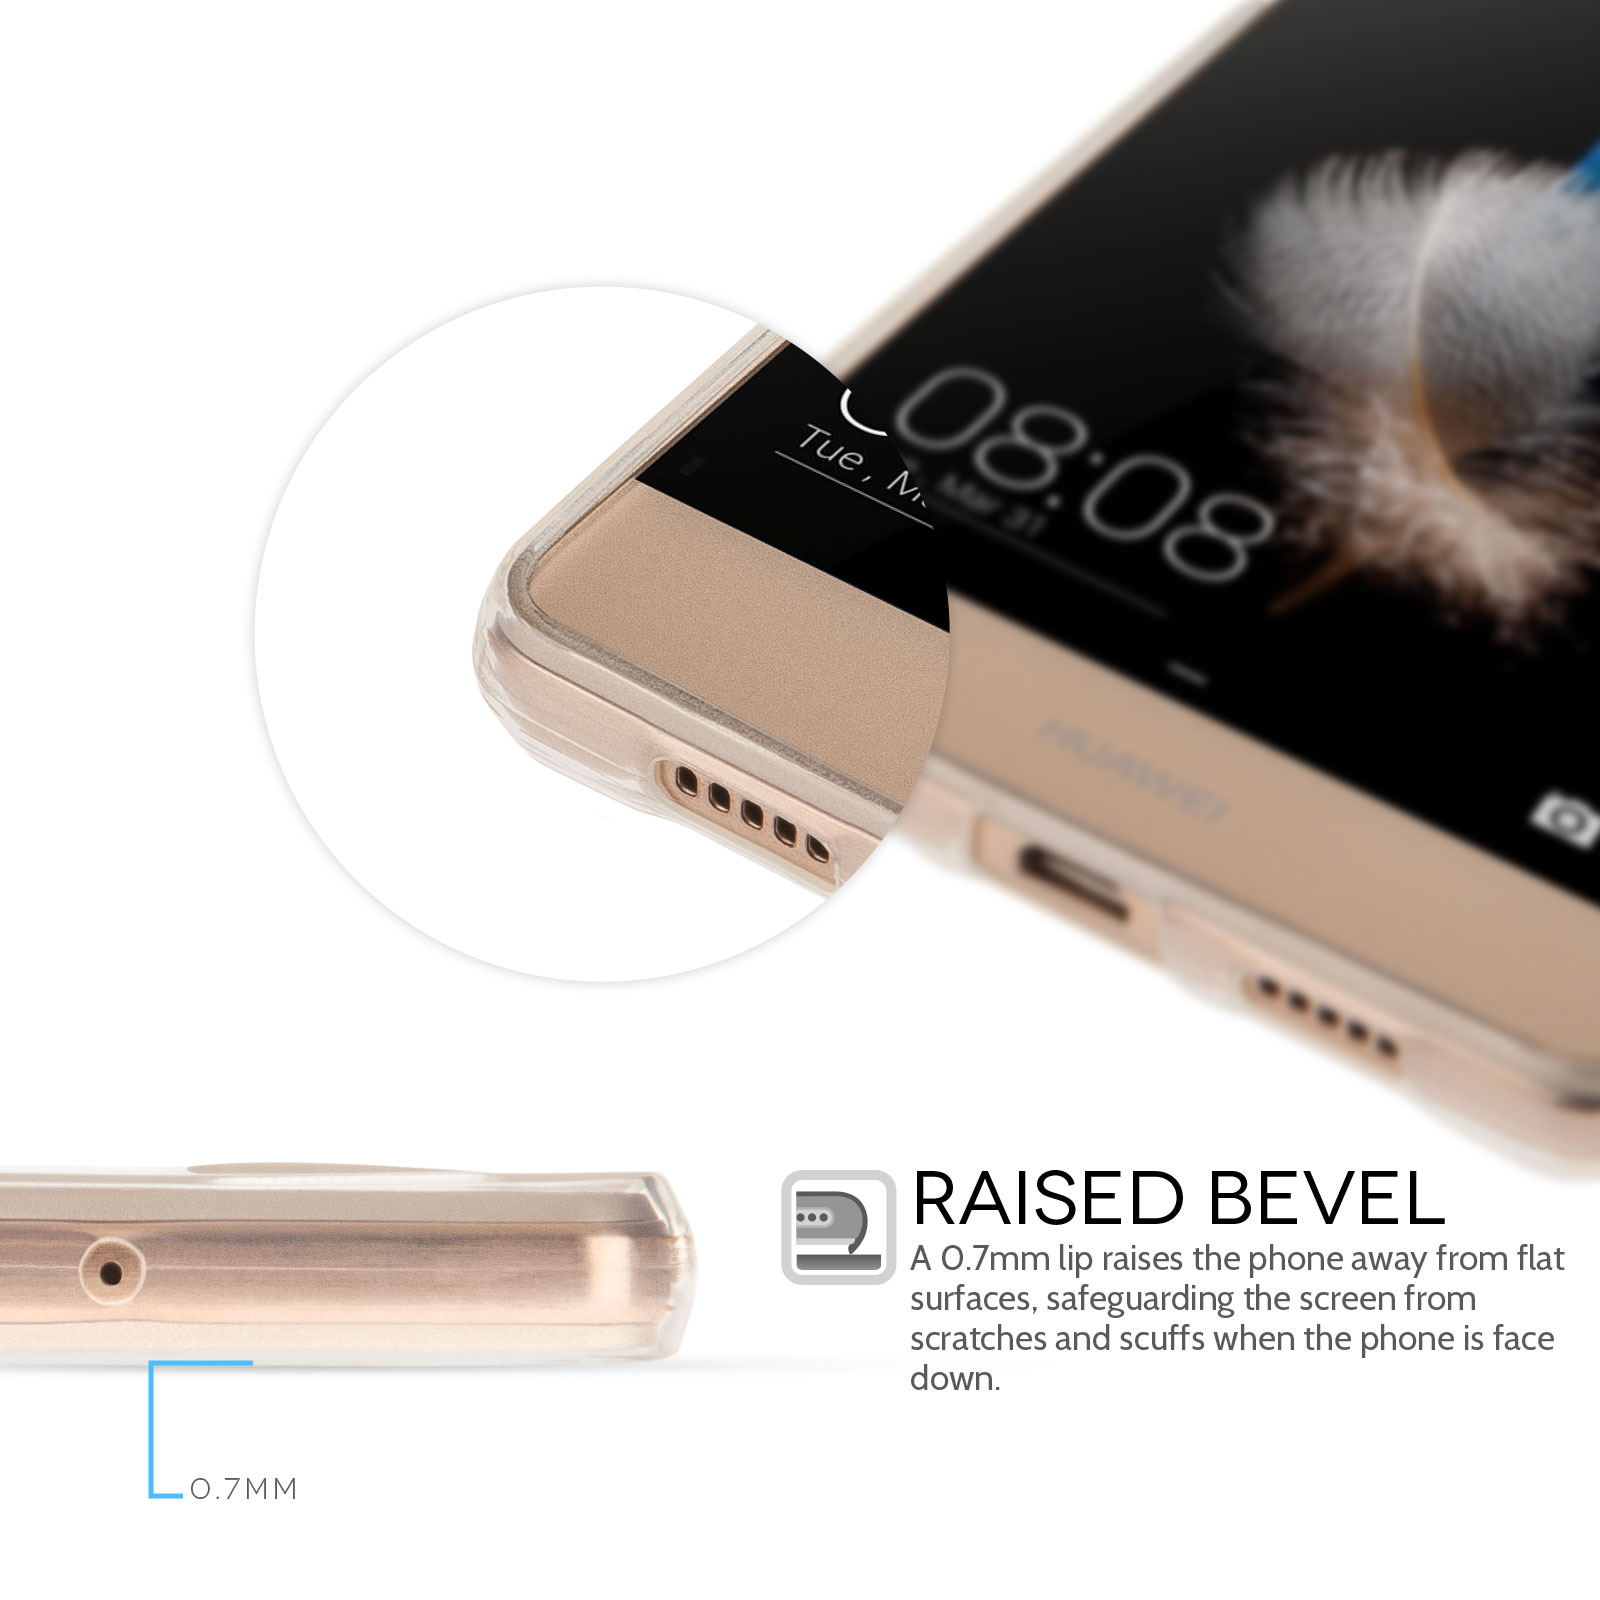 Yousave Accessories Huawei P8 Lite 0.6mm Clear Gel Case